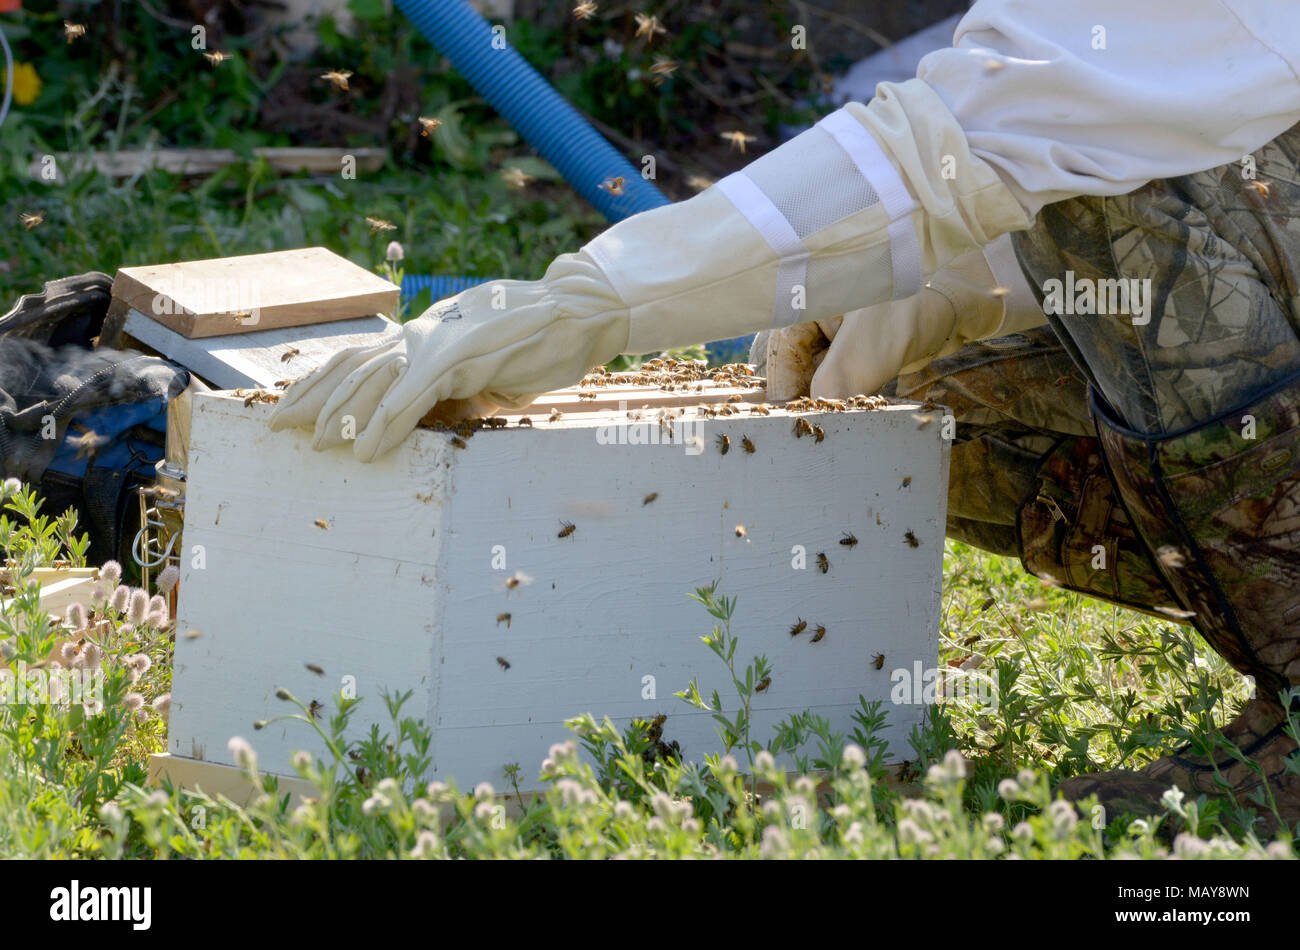 A beehive estimated to contain as many as 40,000 honeybees is